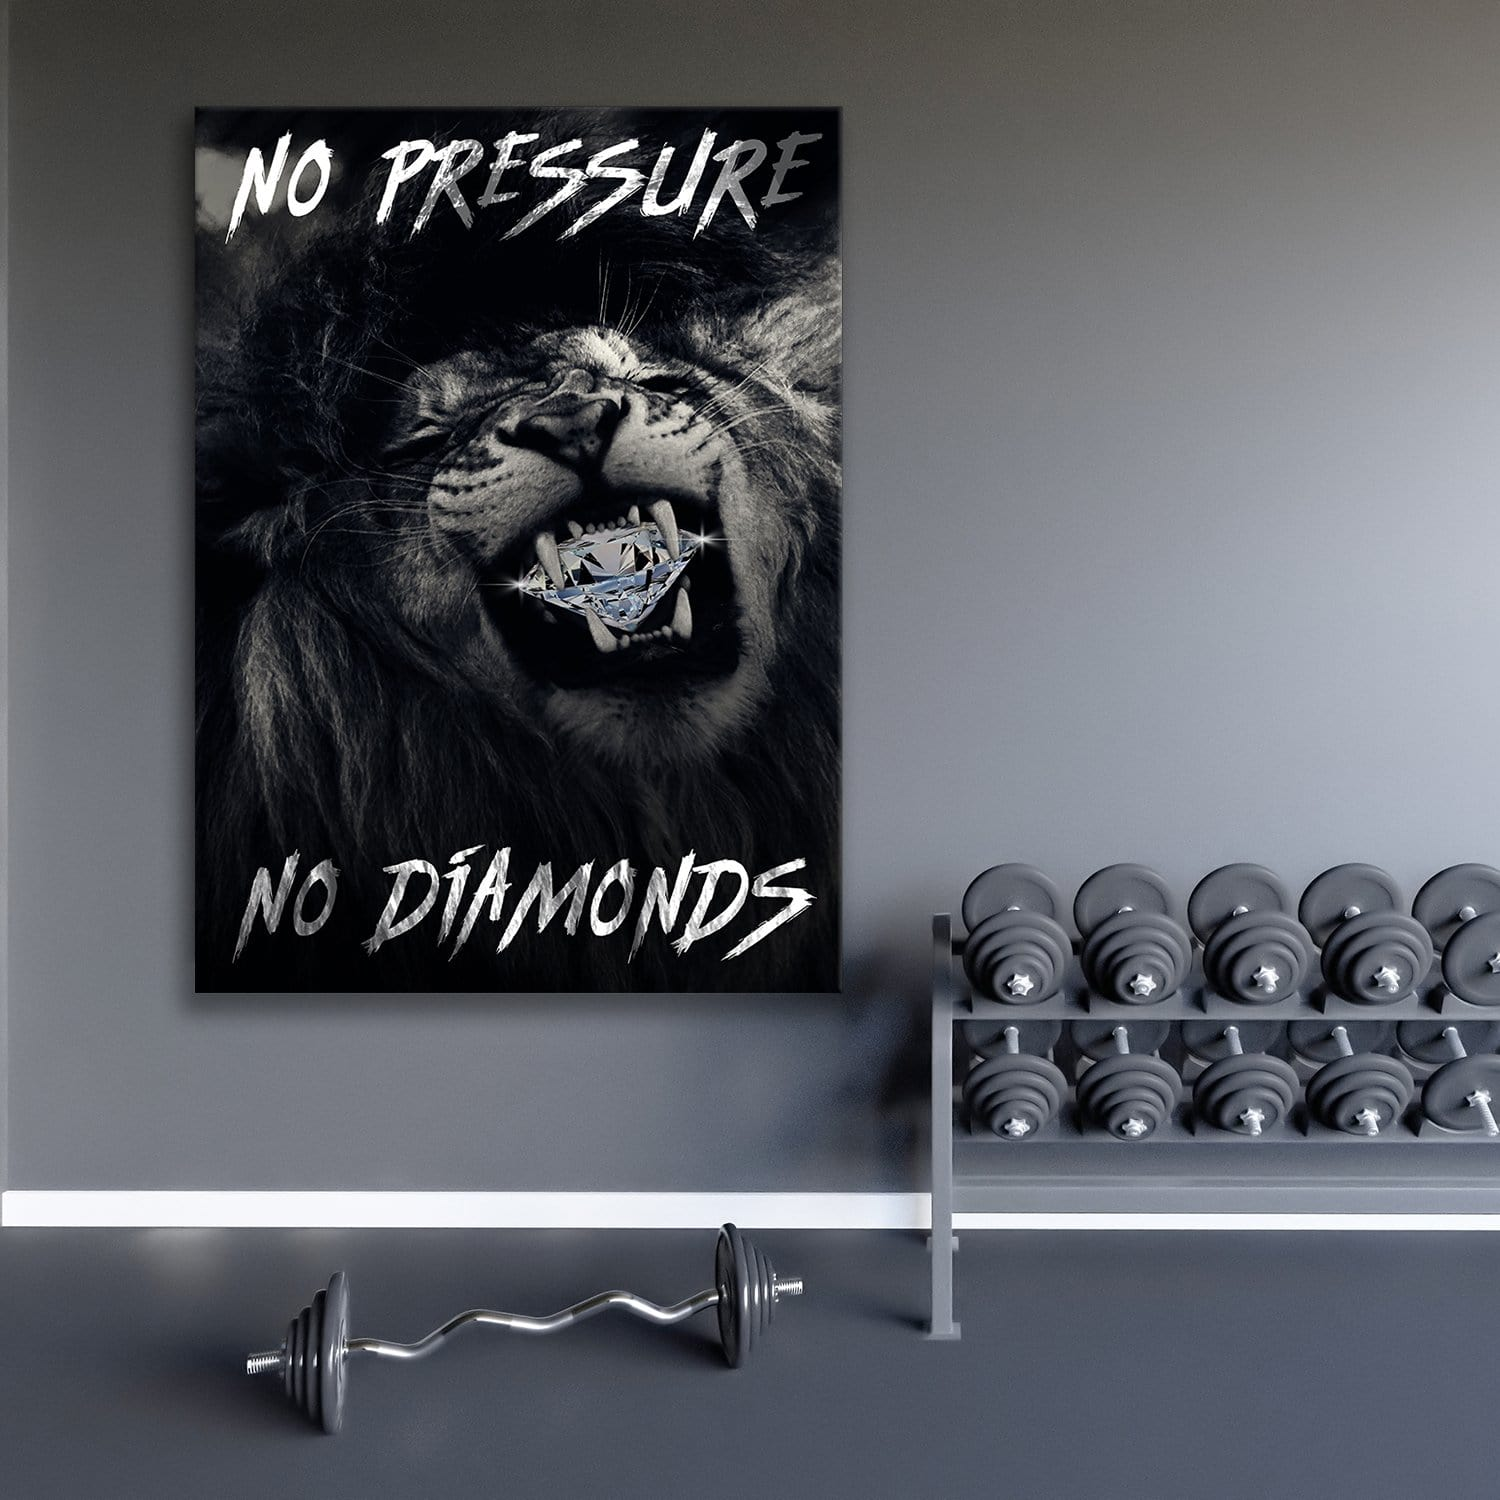 No Pressure No Diamonds - Framed Canvas Painting Wall Art Office Decor, large modern pop artwork for home or office, Entrepreneur Inspirational and motivational Quotes on Canvas great for man cave or home. Perfect for Artwork Addicts. Made in USA, FREE Shipping.